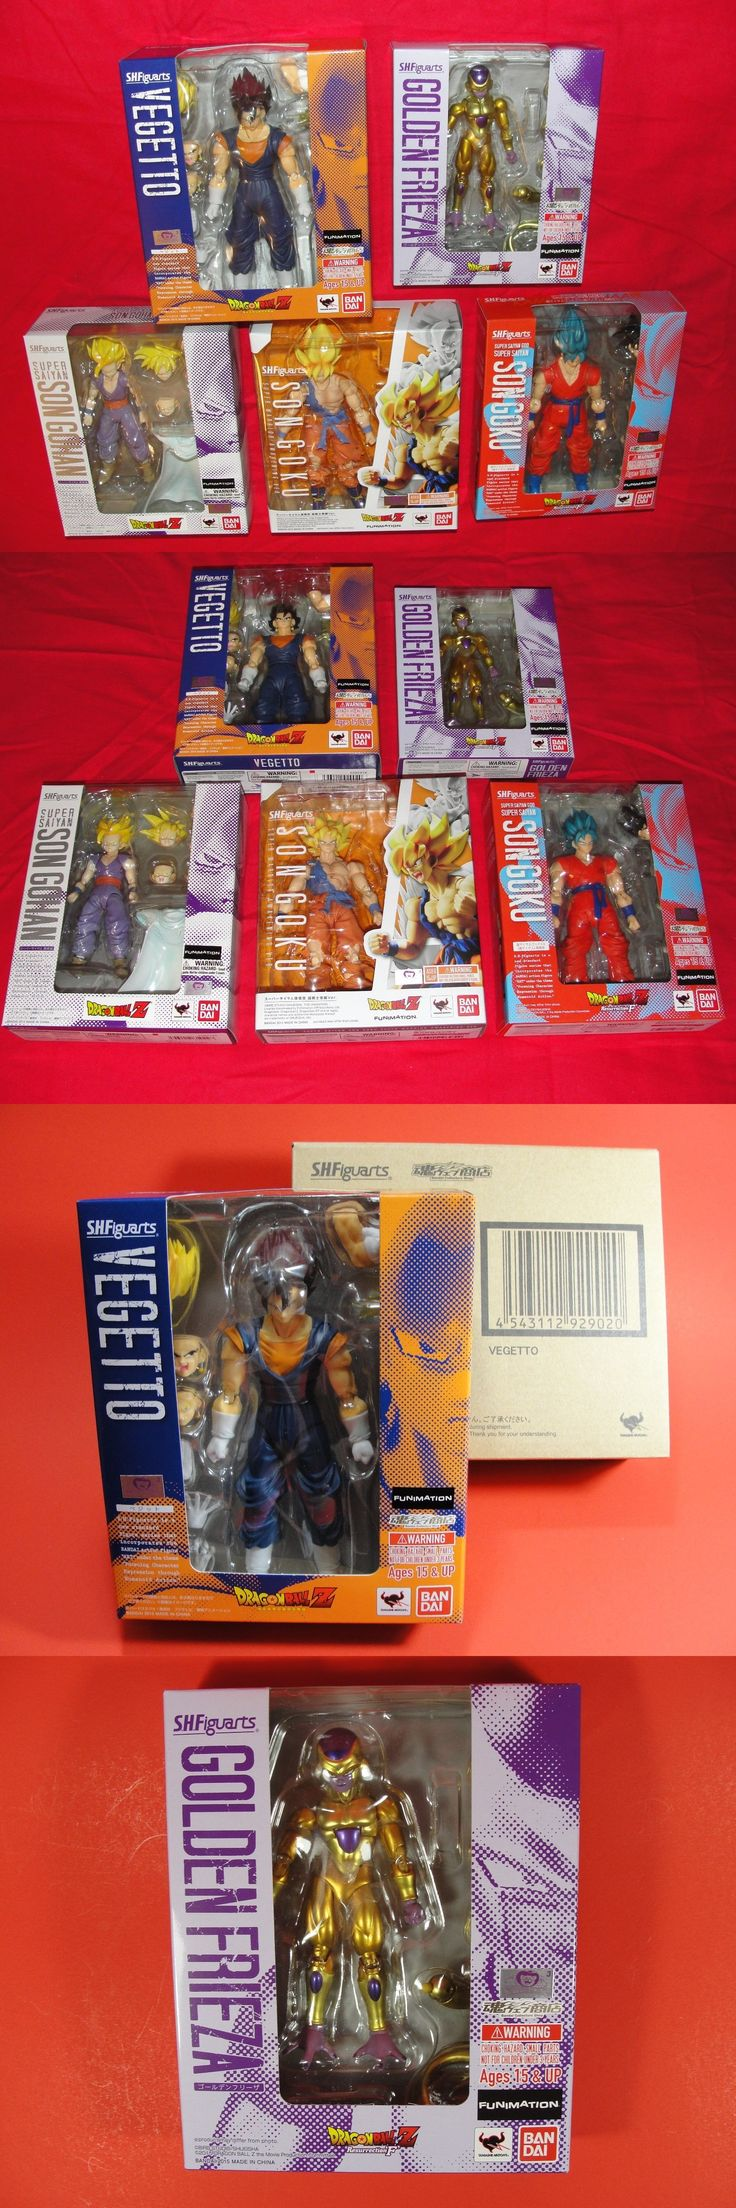 Other TV Movie Character Toys 2622: Bandai S.H. Figuarts Dbz 5 Figure Lot Dragonball Z Vegetto, Goku, Friezai, Gohan -> BUY IT NOW ONLY: $239.99 on eBay!